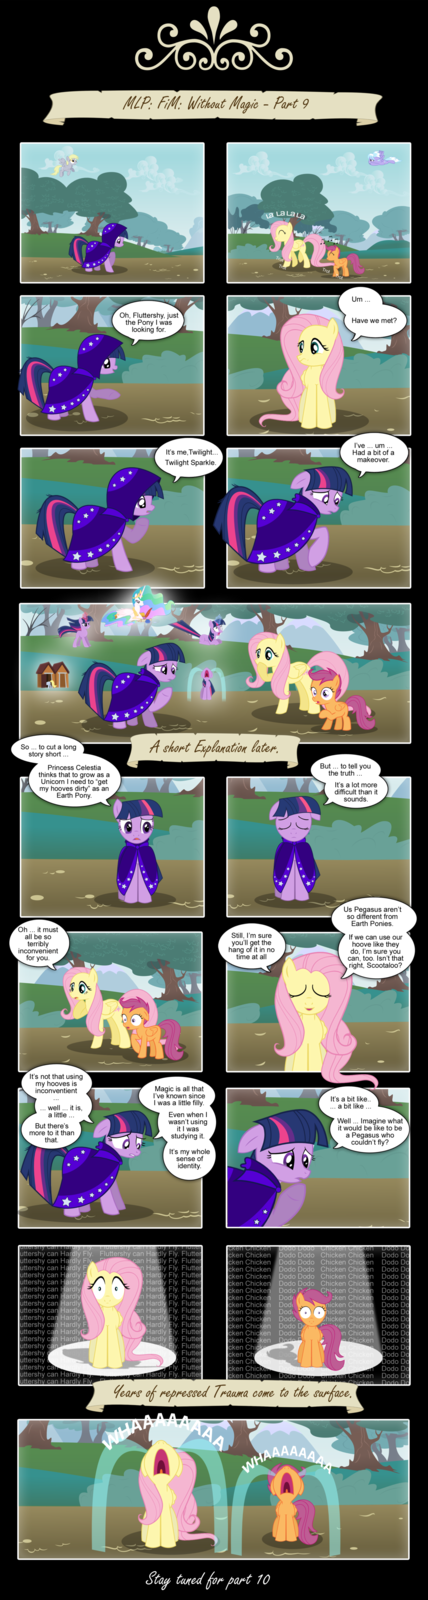 Without Magic - Part 9